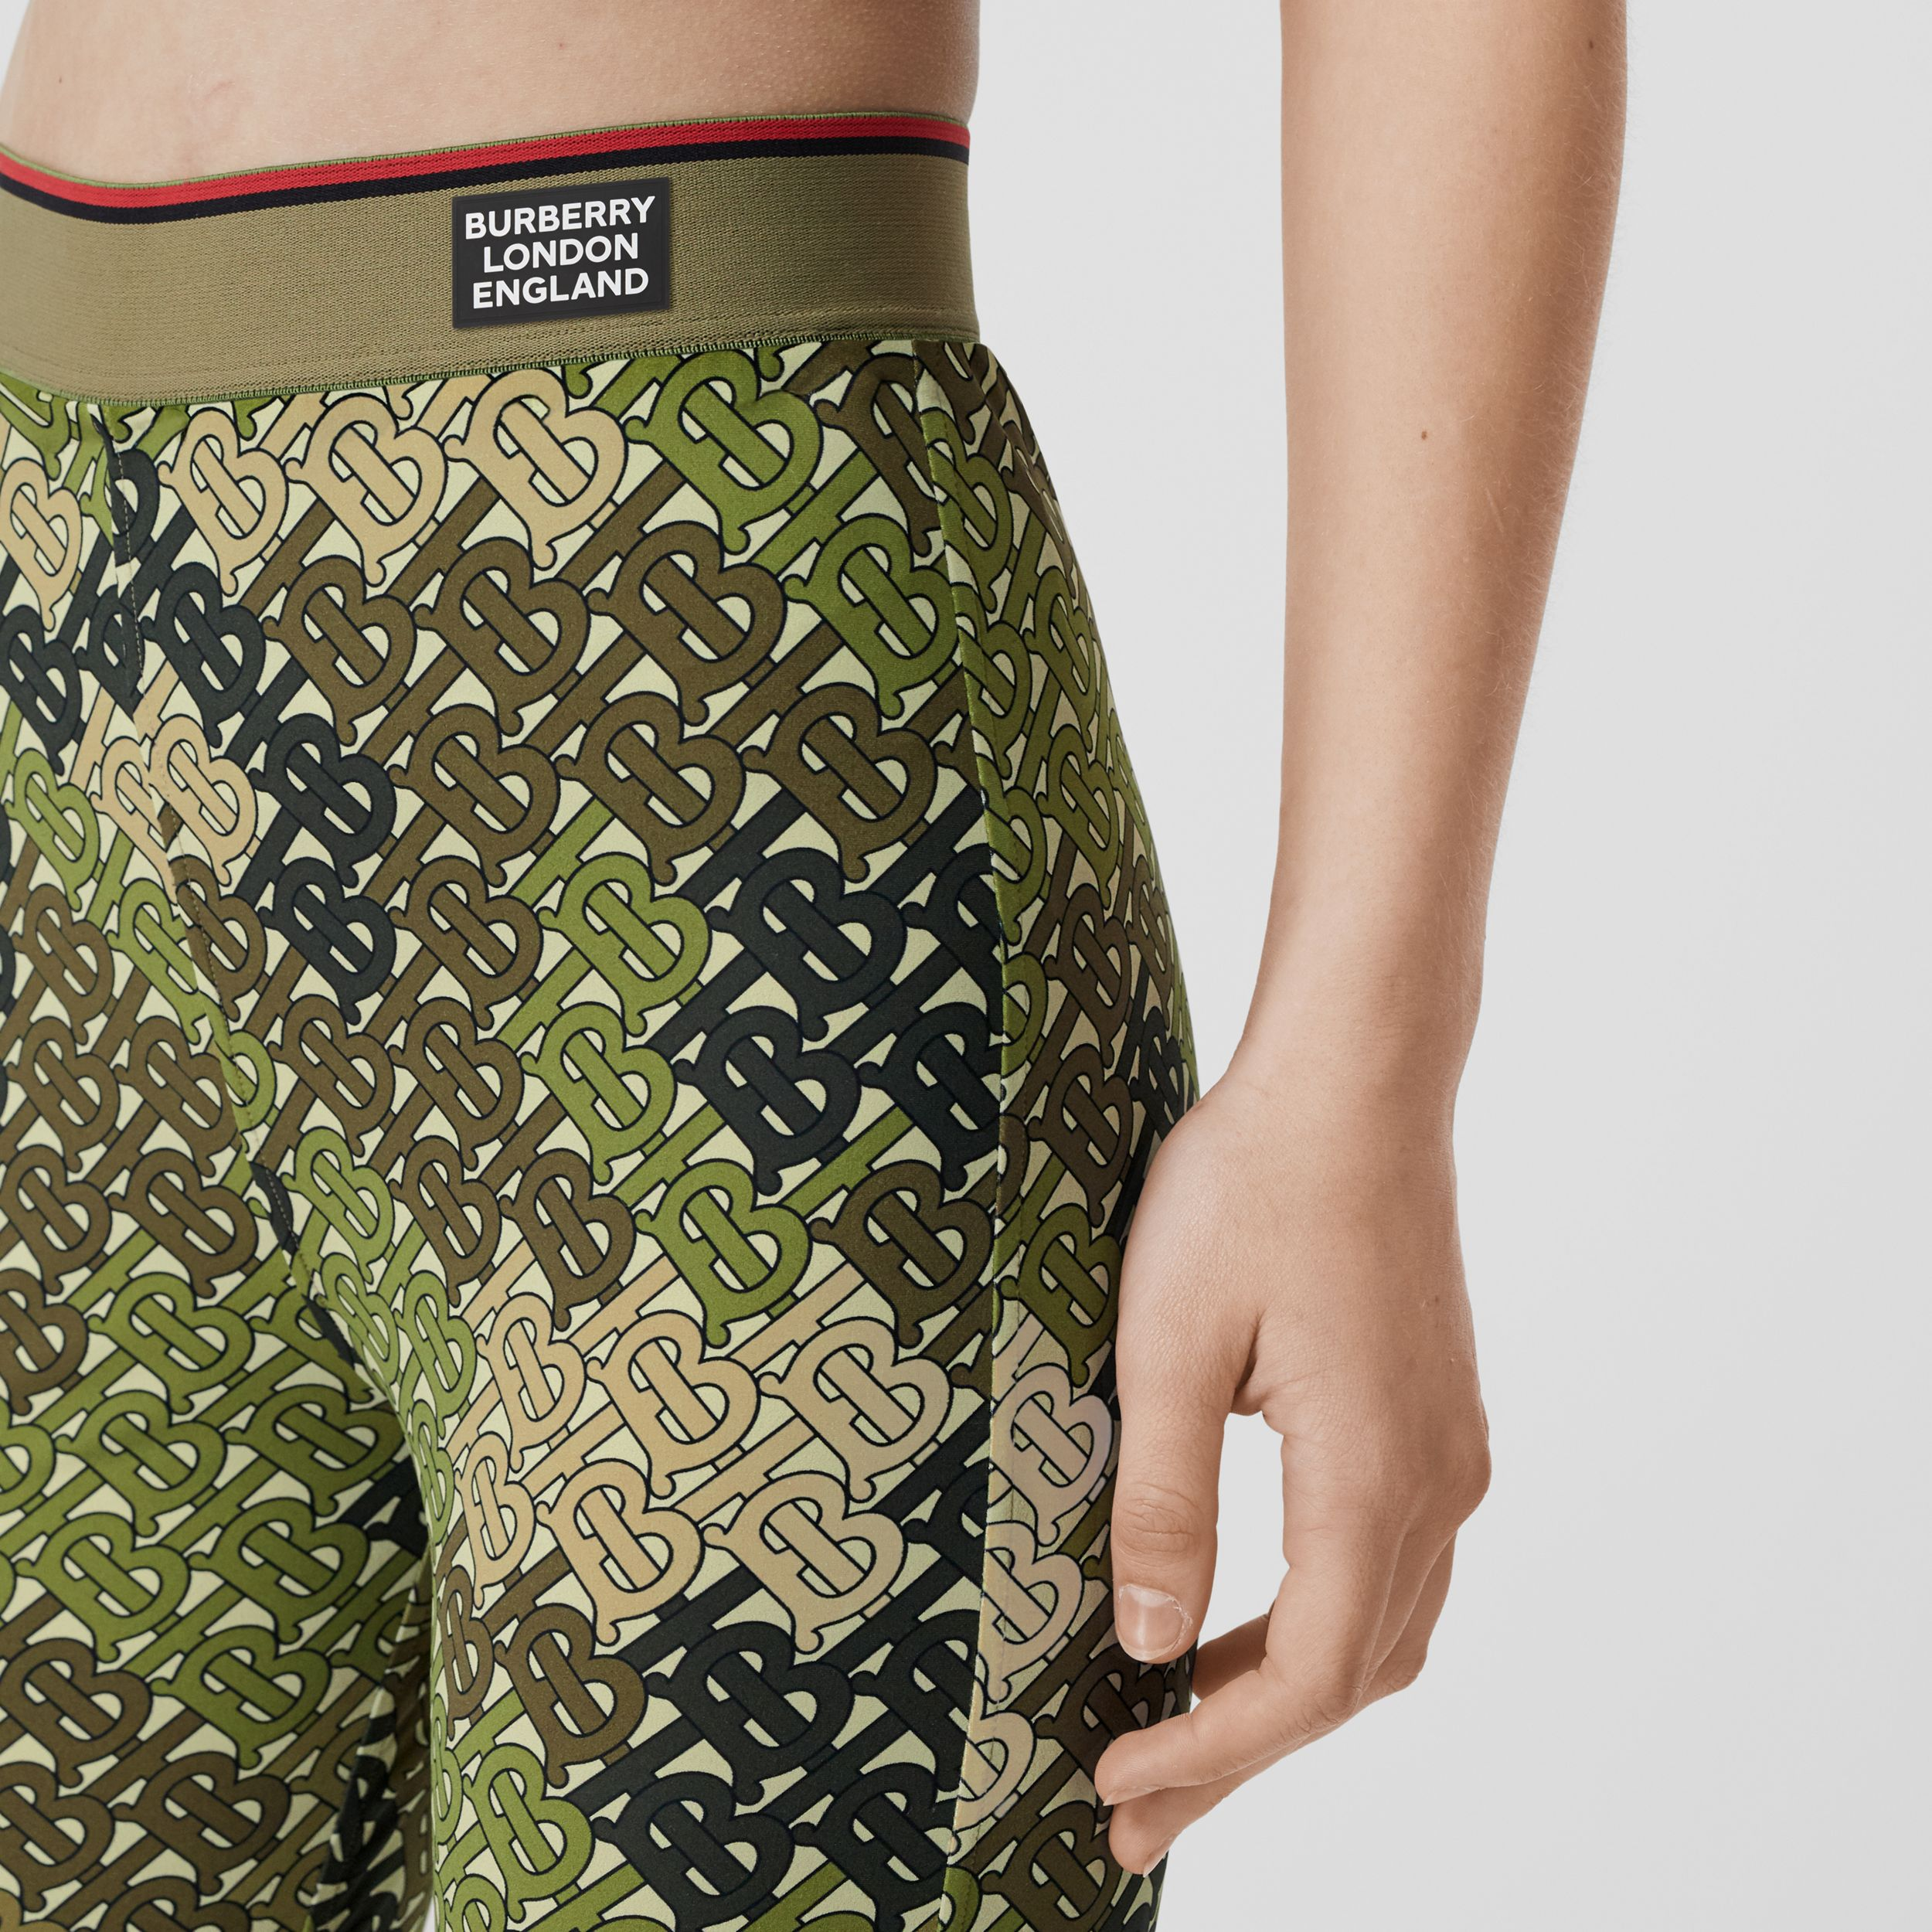 Monogram Print Stretch Jersey Leggings in Khaki Green - Women | Burberry - 2